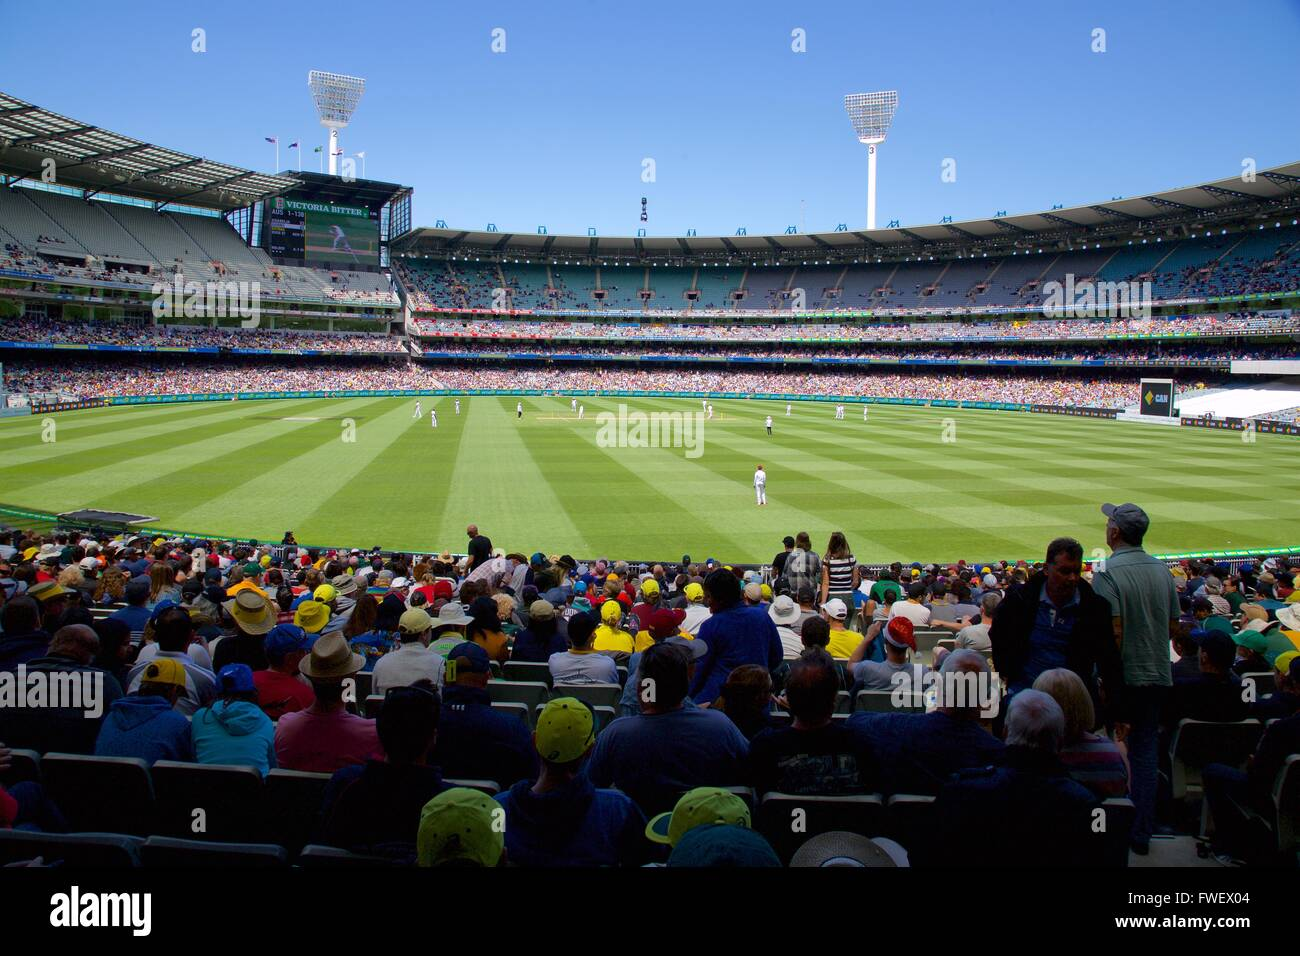 Melbourne Cricket Ground Test Match, Melbourne, Victoria, Australia, Oceania - Stock Image